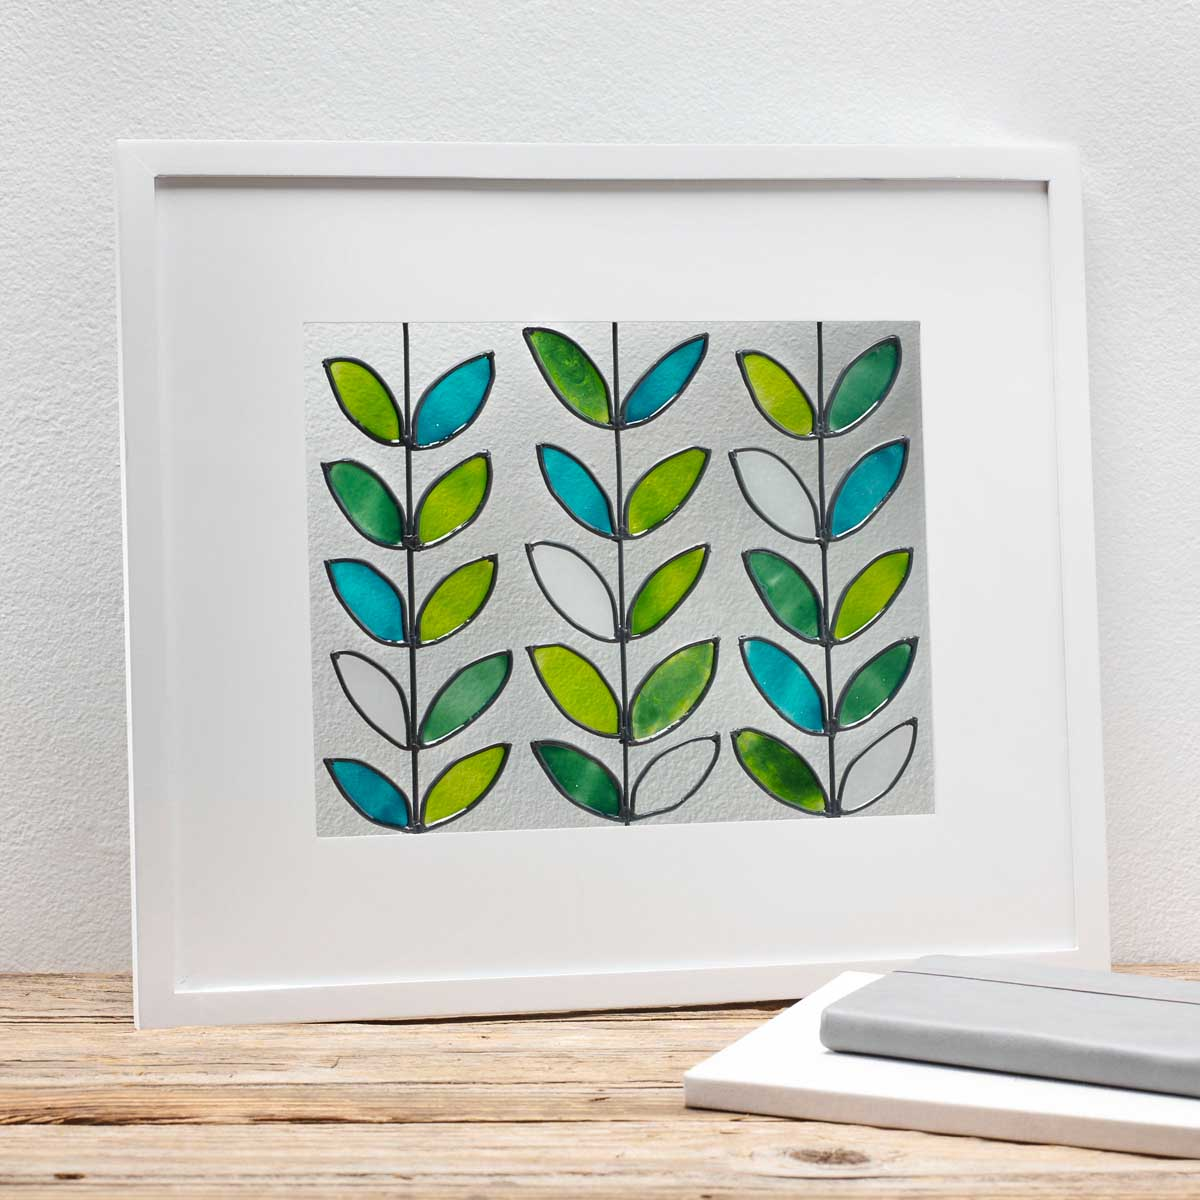 Framed Glass Leaves